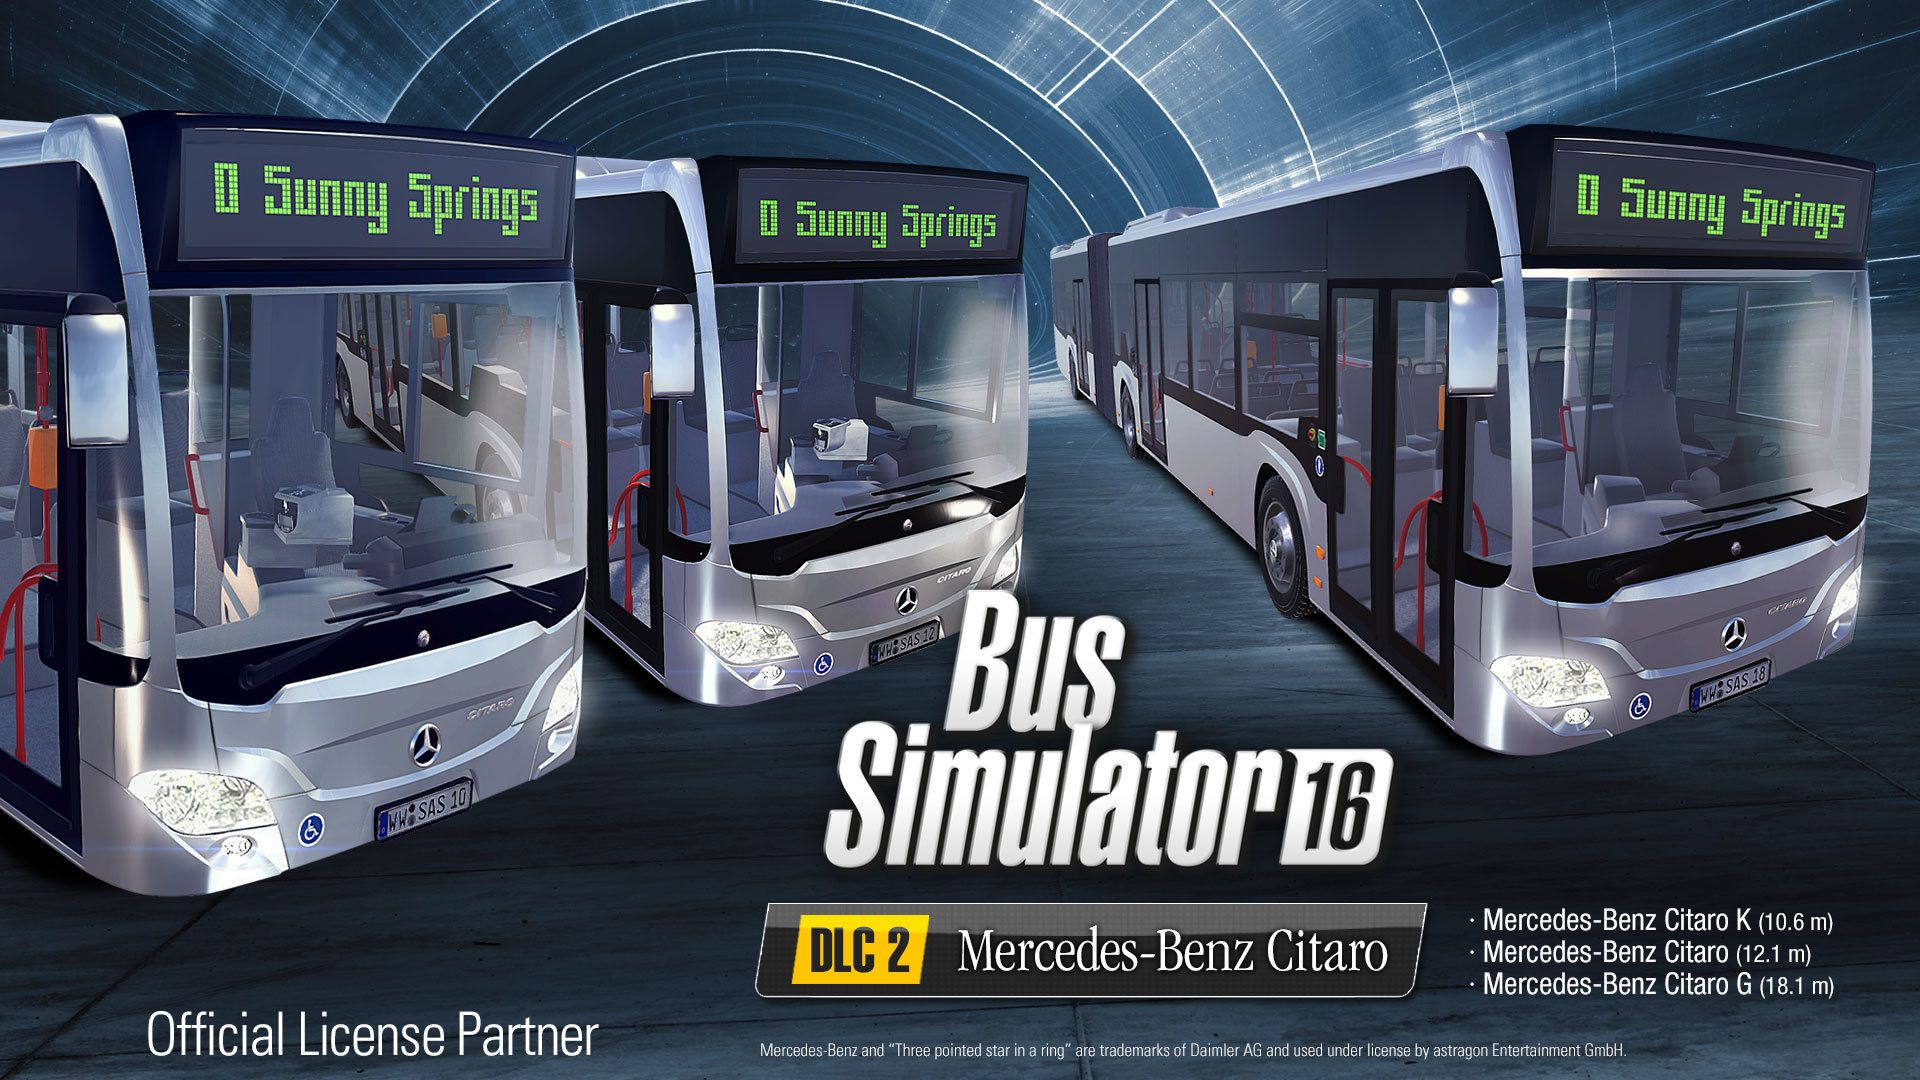 Bus Simulator 16 - Mercedes-Benz Citaro DLC